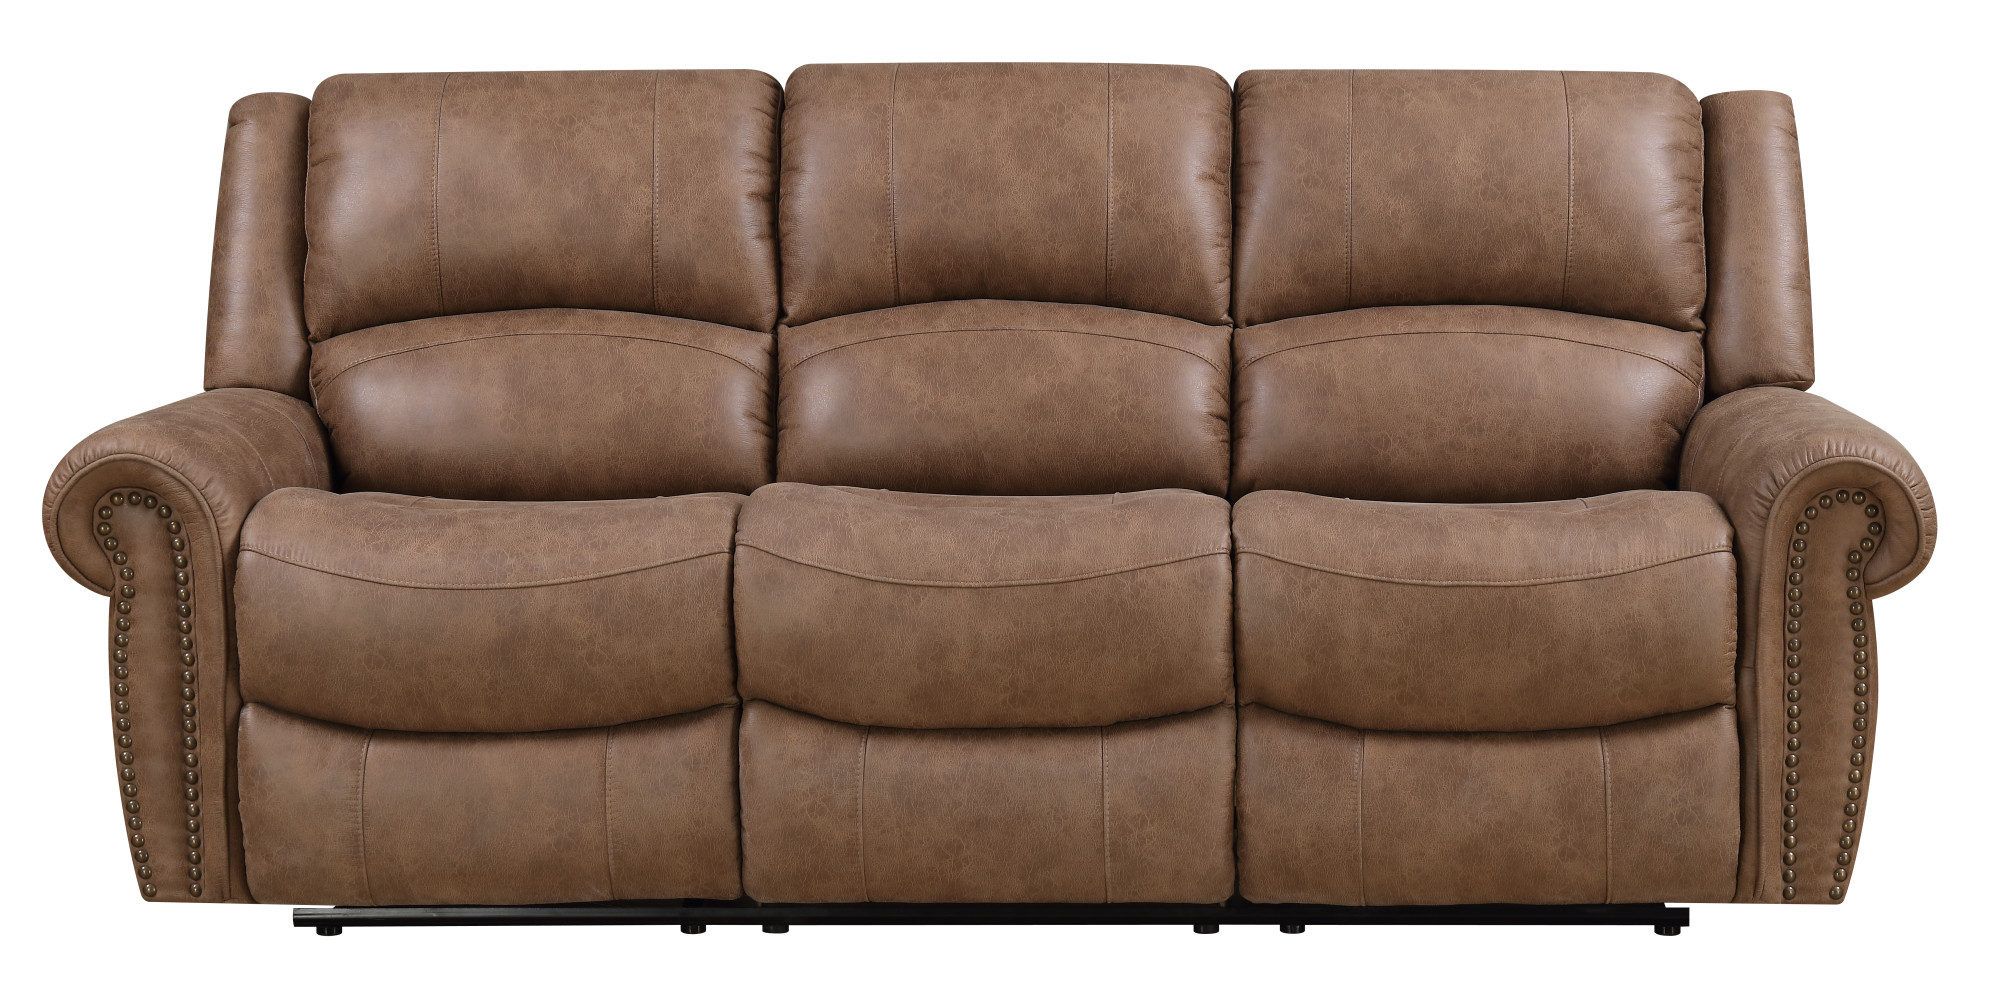 reclining sofa with nailhead trim outdoor perth emerald home spencer brown dual recliners and pillow back